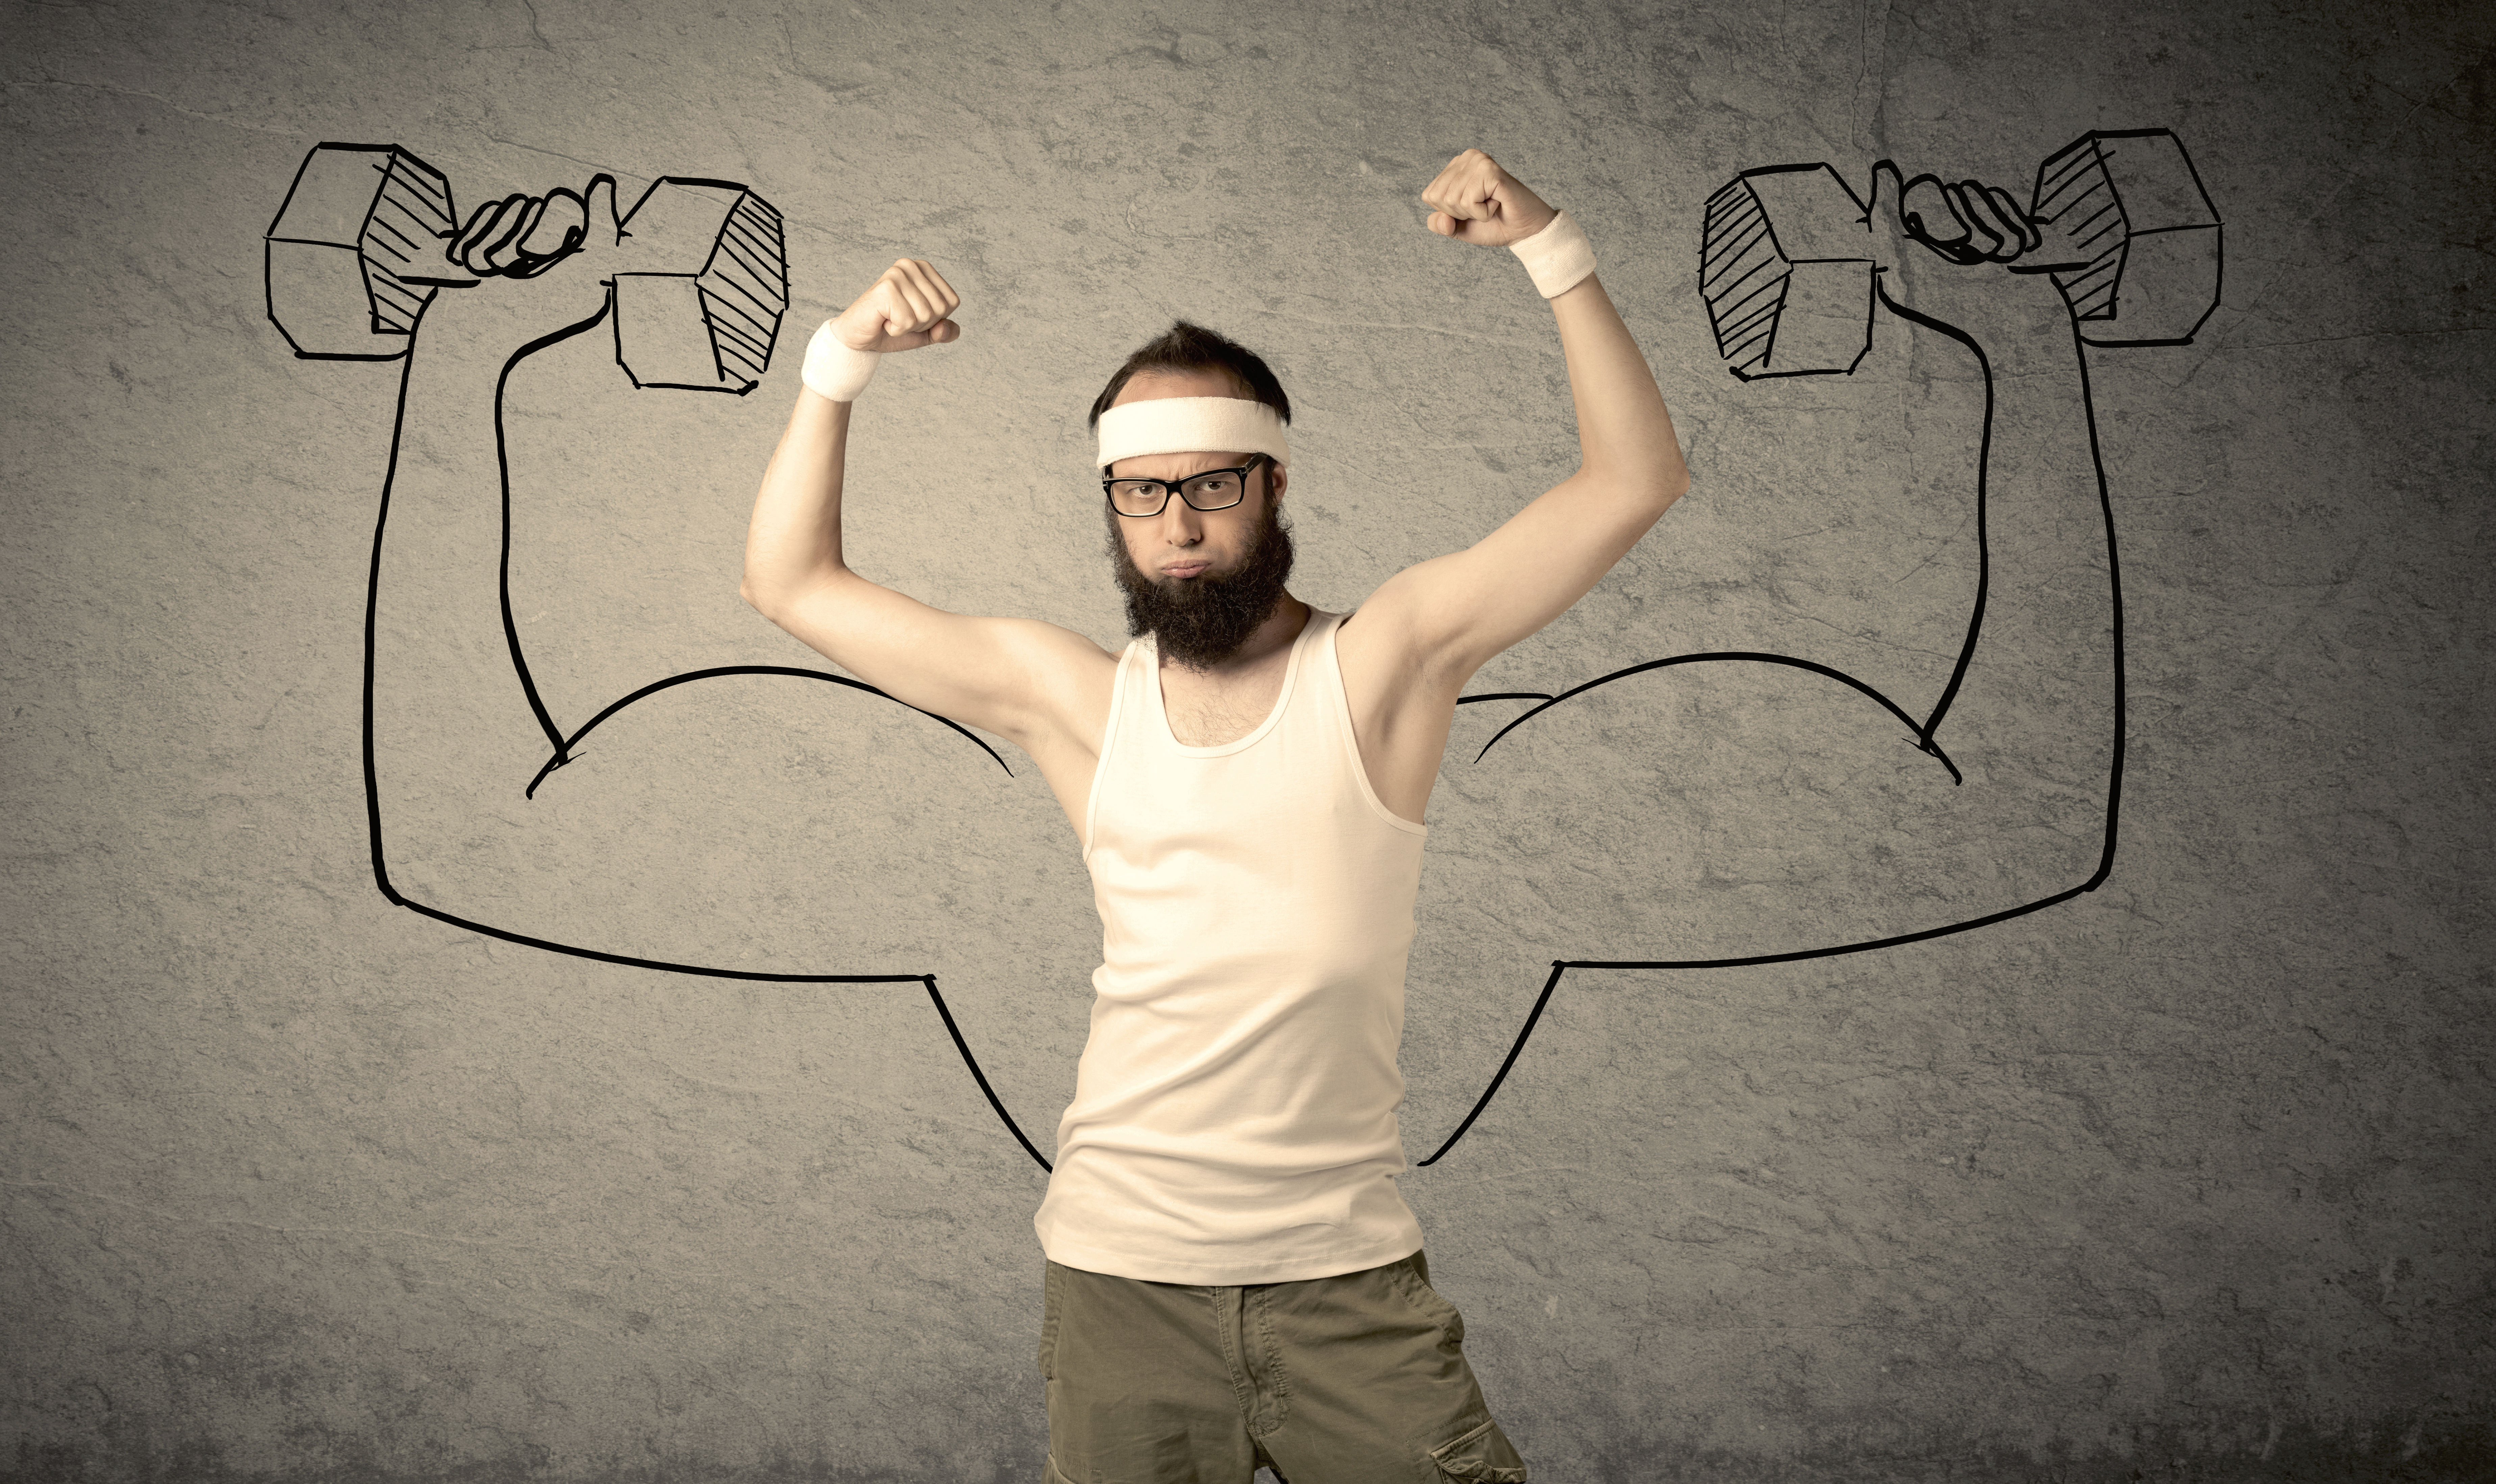 A young college student with beard and glasses posing in front of grey background, thinking about lifting weight with big muscles, illustrated by white drawing concept.